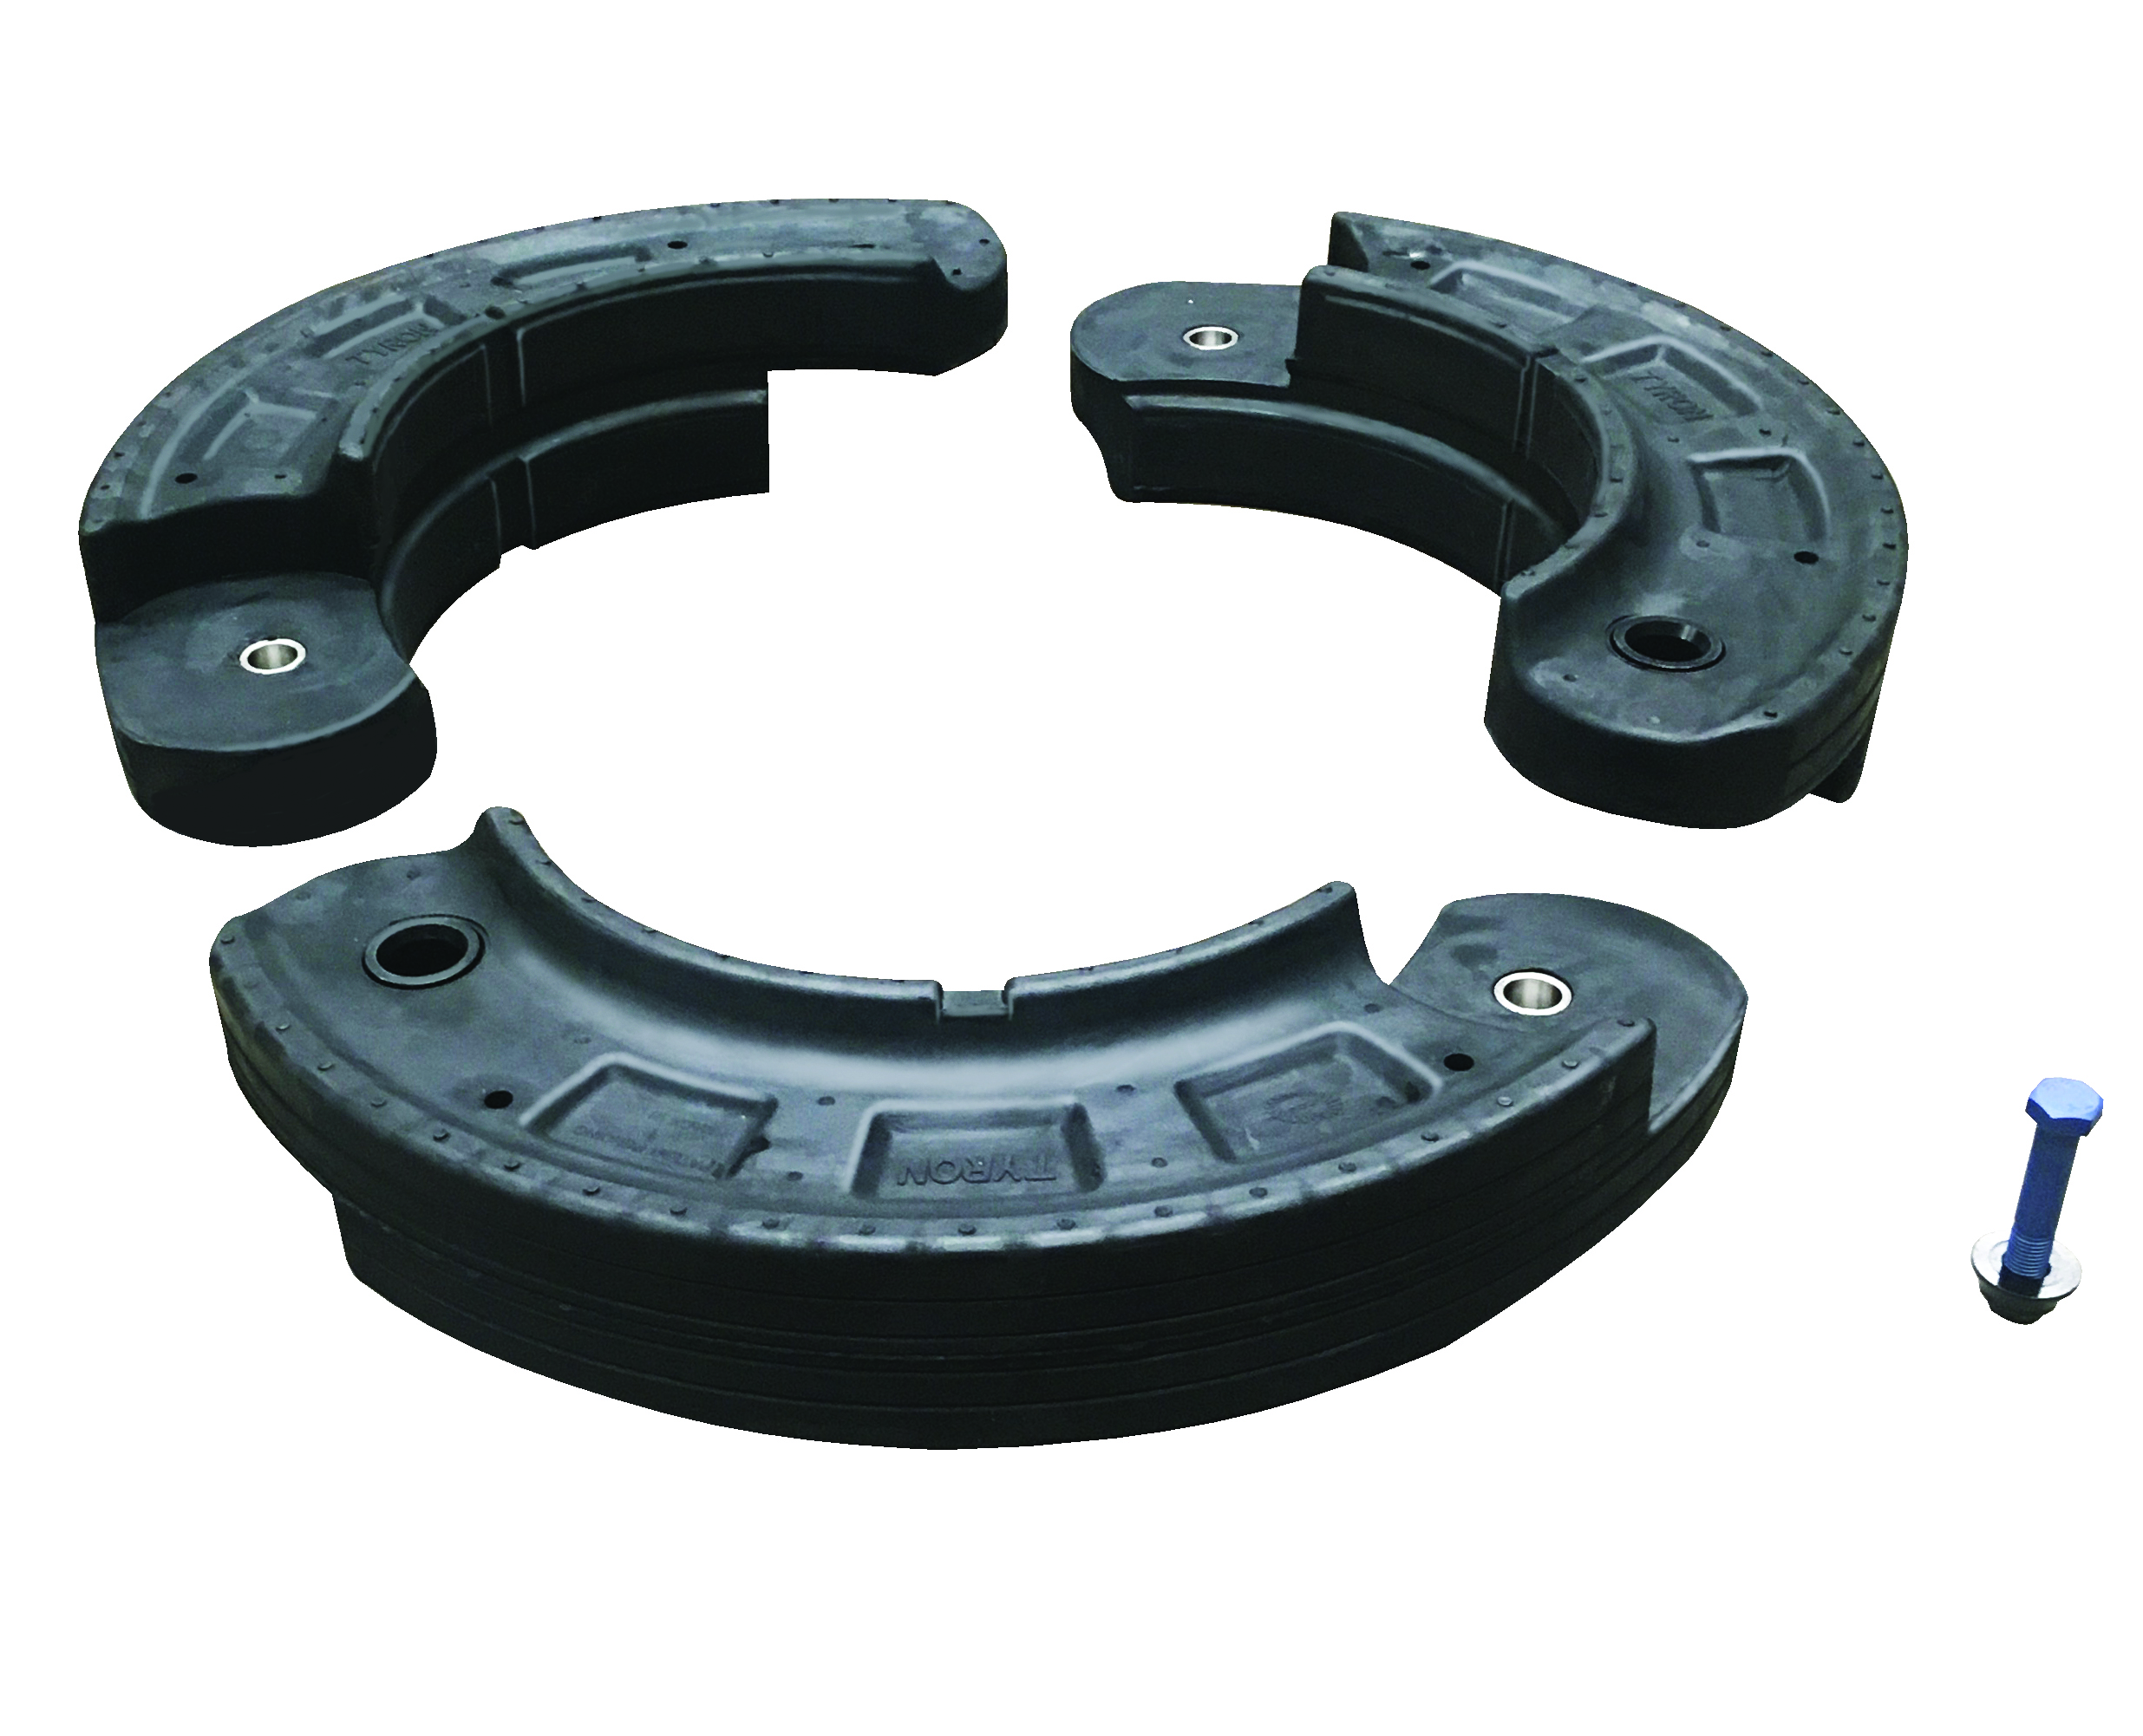 The Tyron ATR-MP Runflat is the world's only rubber multi-piece runflat.